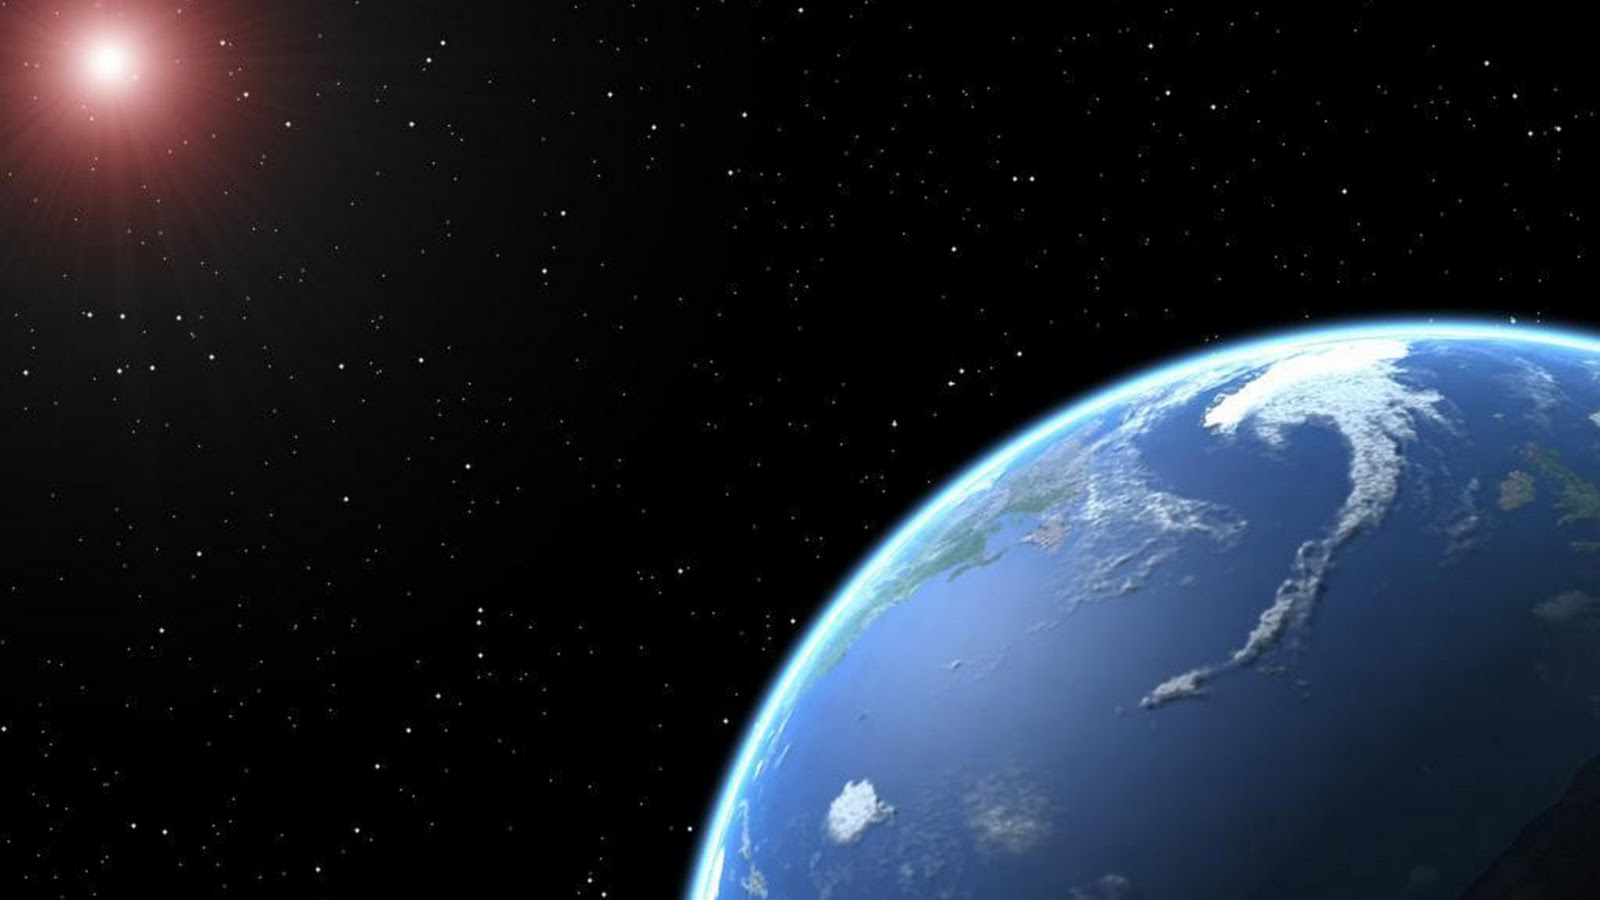 space wallpapers 0o hd space wallpaper blue earth from outer spacejpg 1600x900